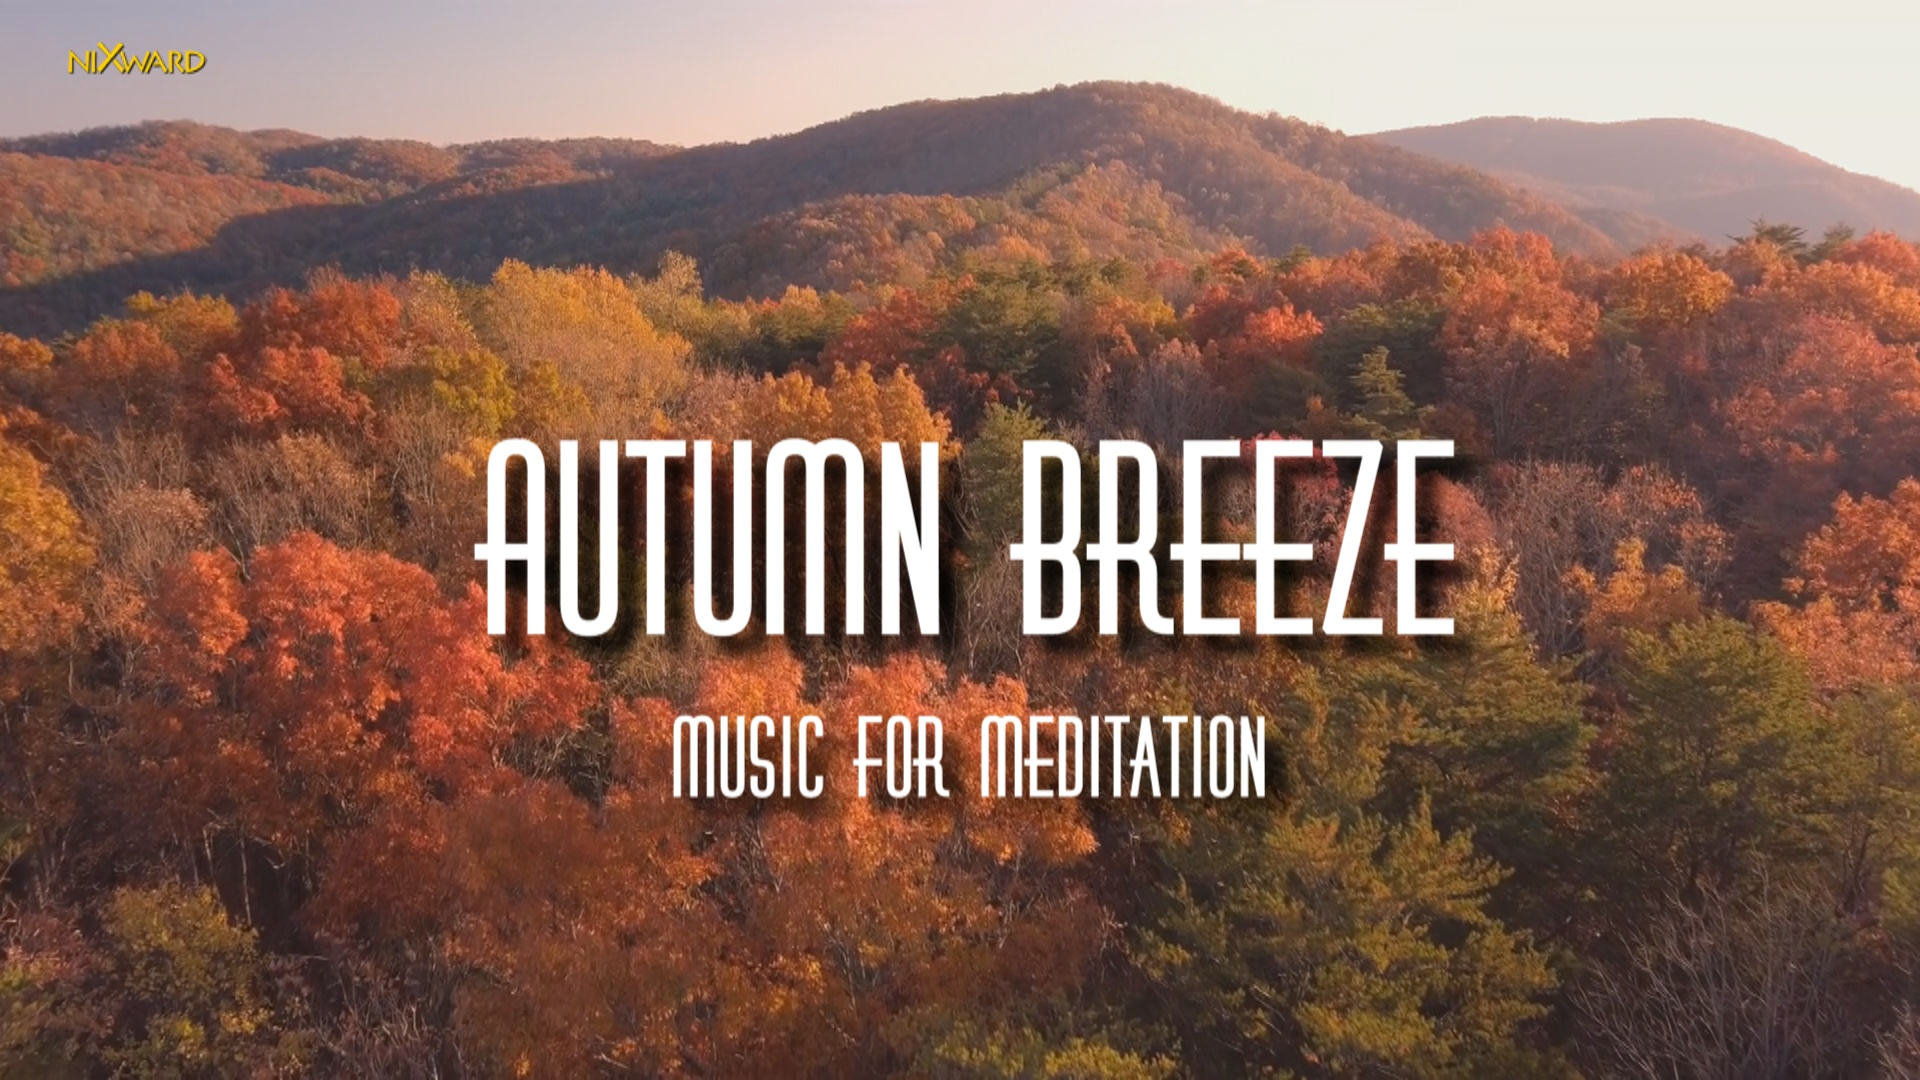 Nixward - Autumn Breeze